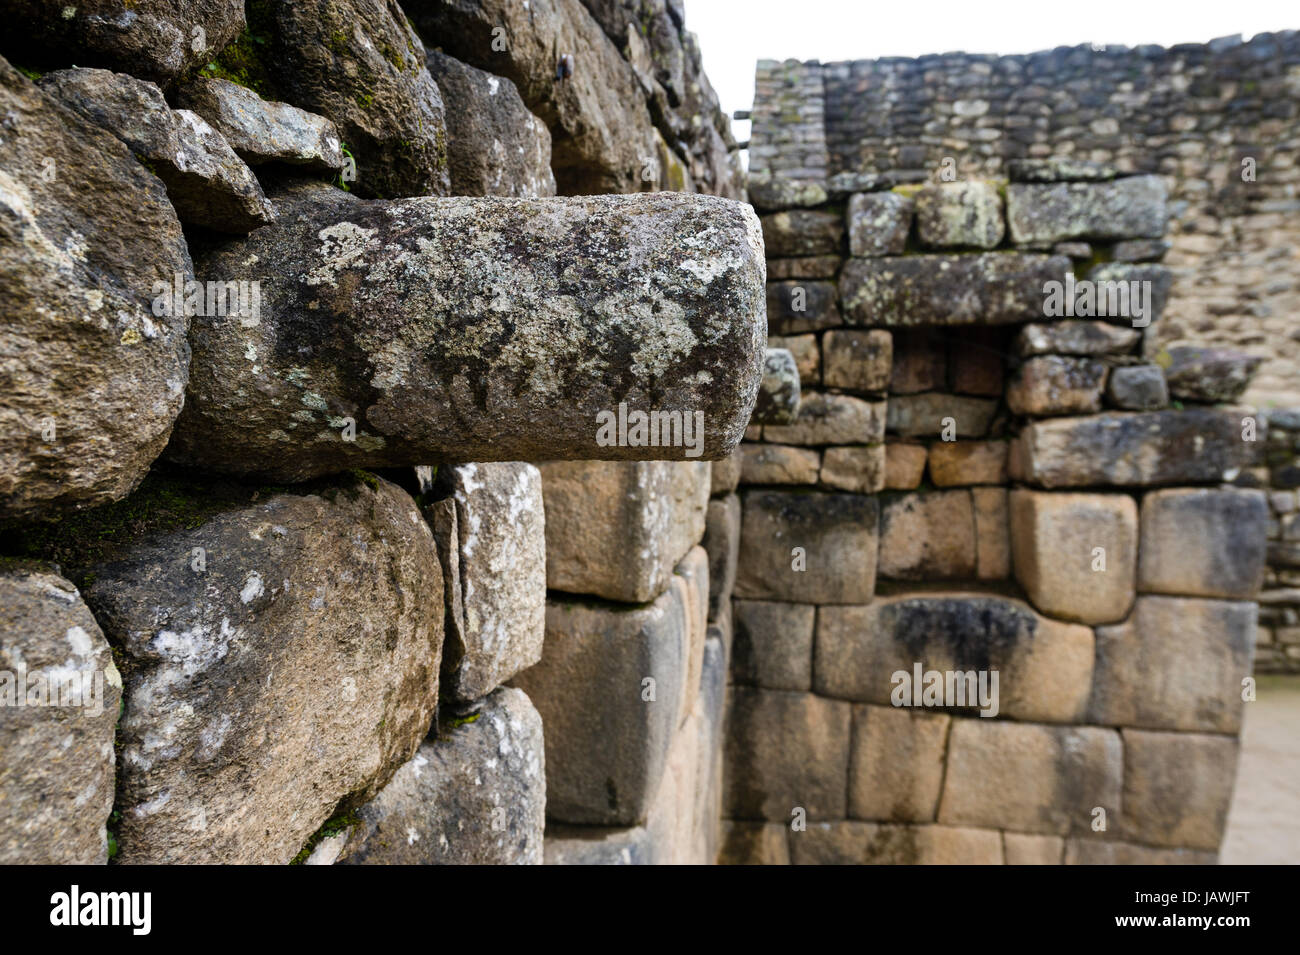 A stone joist emerges from a wall to support a ceiling in a Inca building. - Stock Image